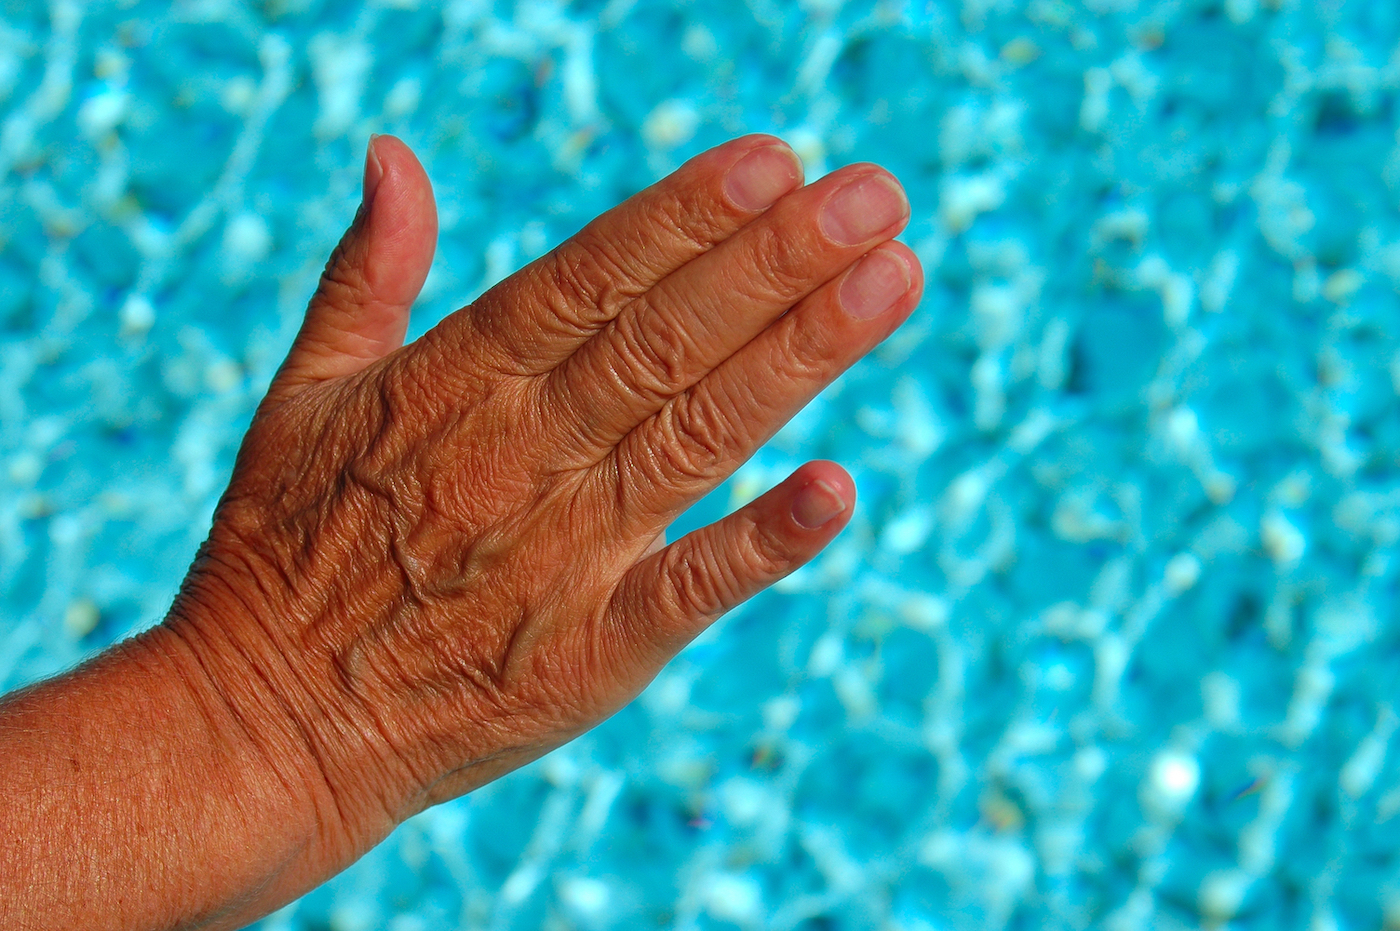 an old wrinkled female caucasian hand touching the fresh sparkling water of a swimming-pool